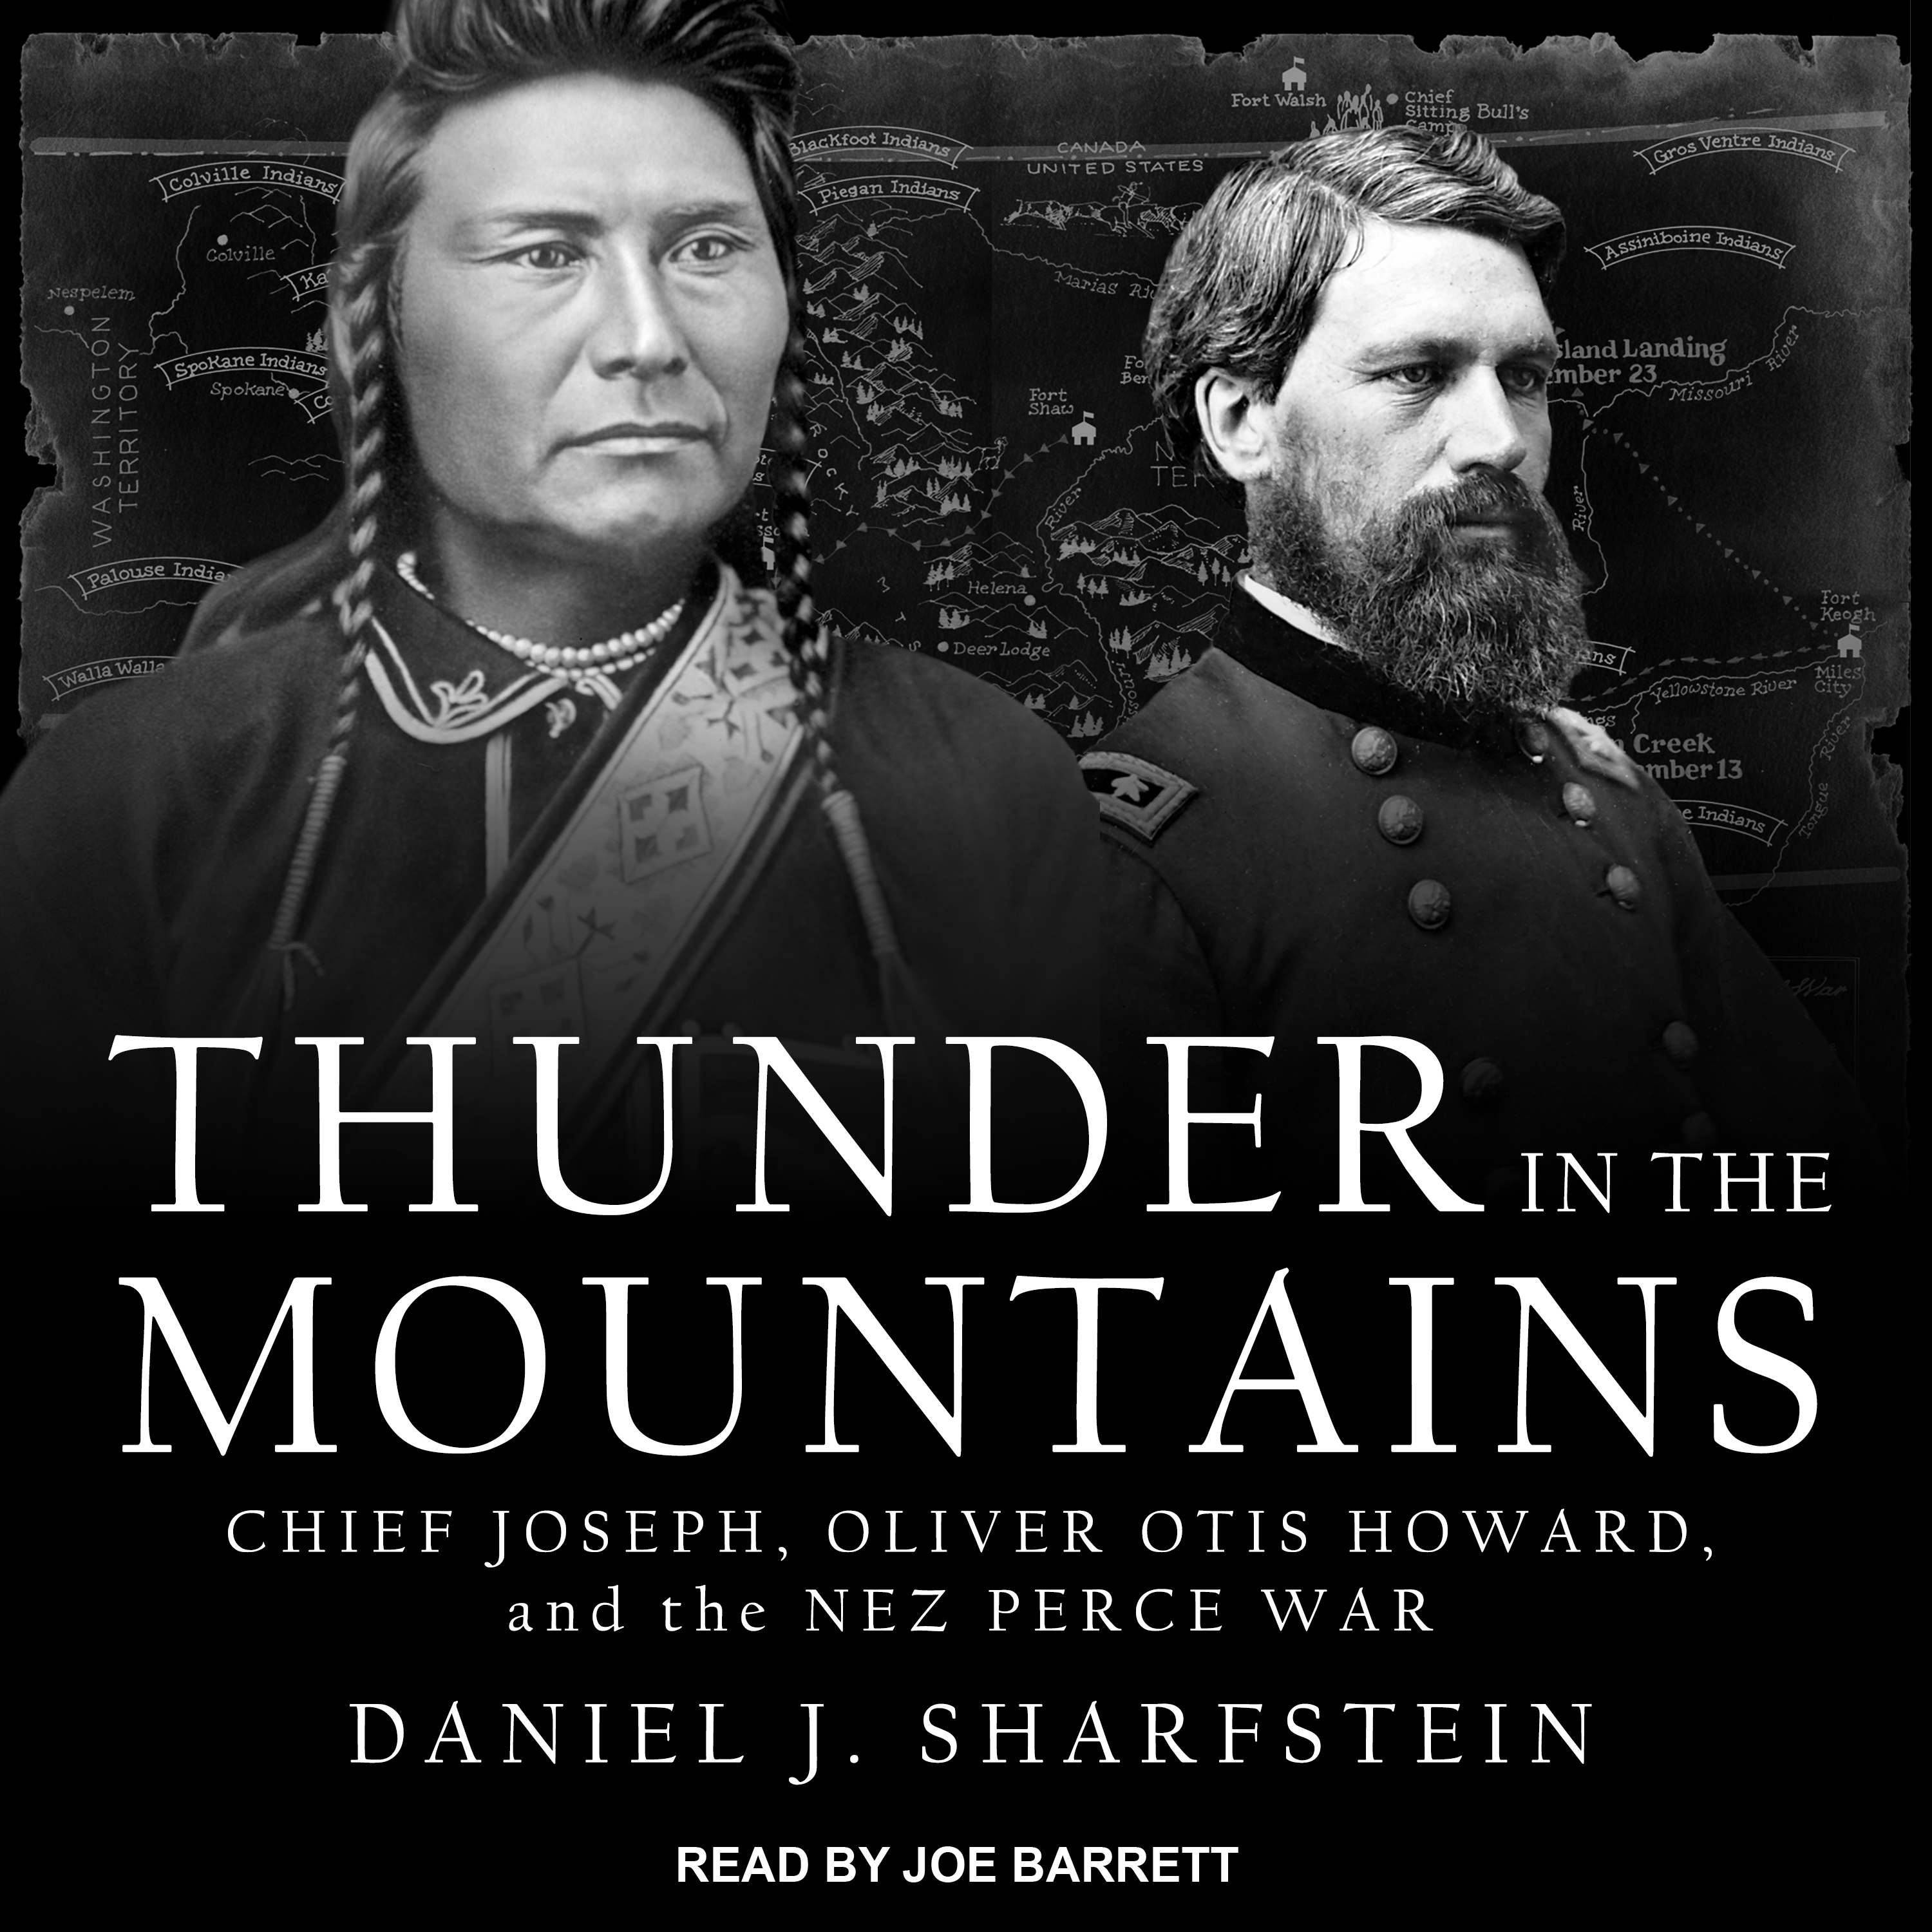 Printable Thunder in the Mountains: Chief Joseph, Oliver Otis Howard, and the Nez Perce War Audiobook Cover Art